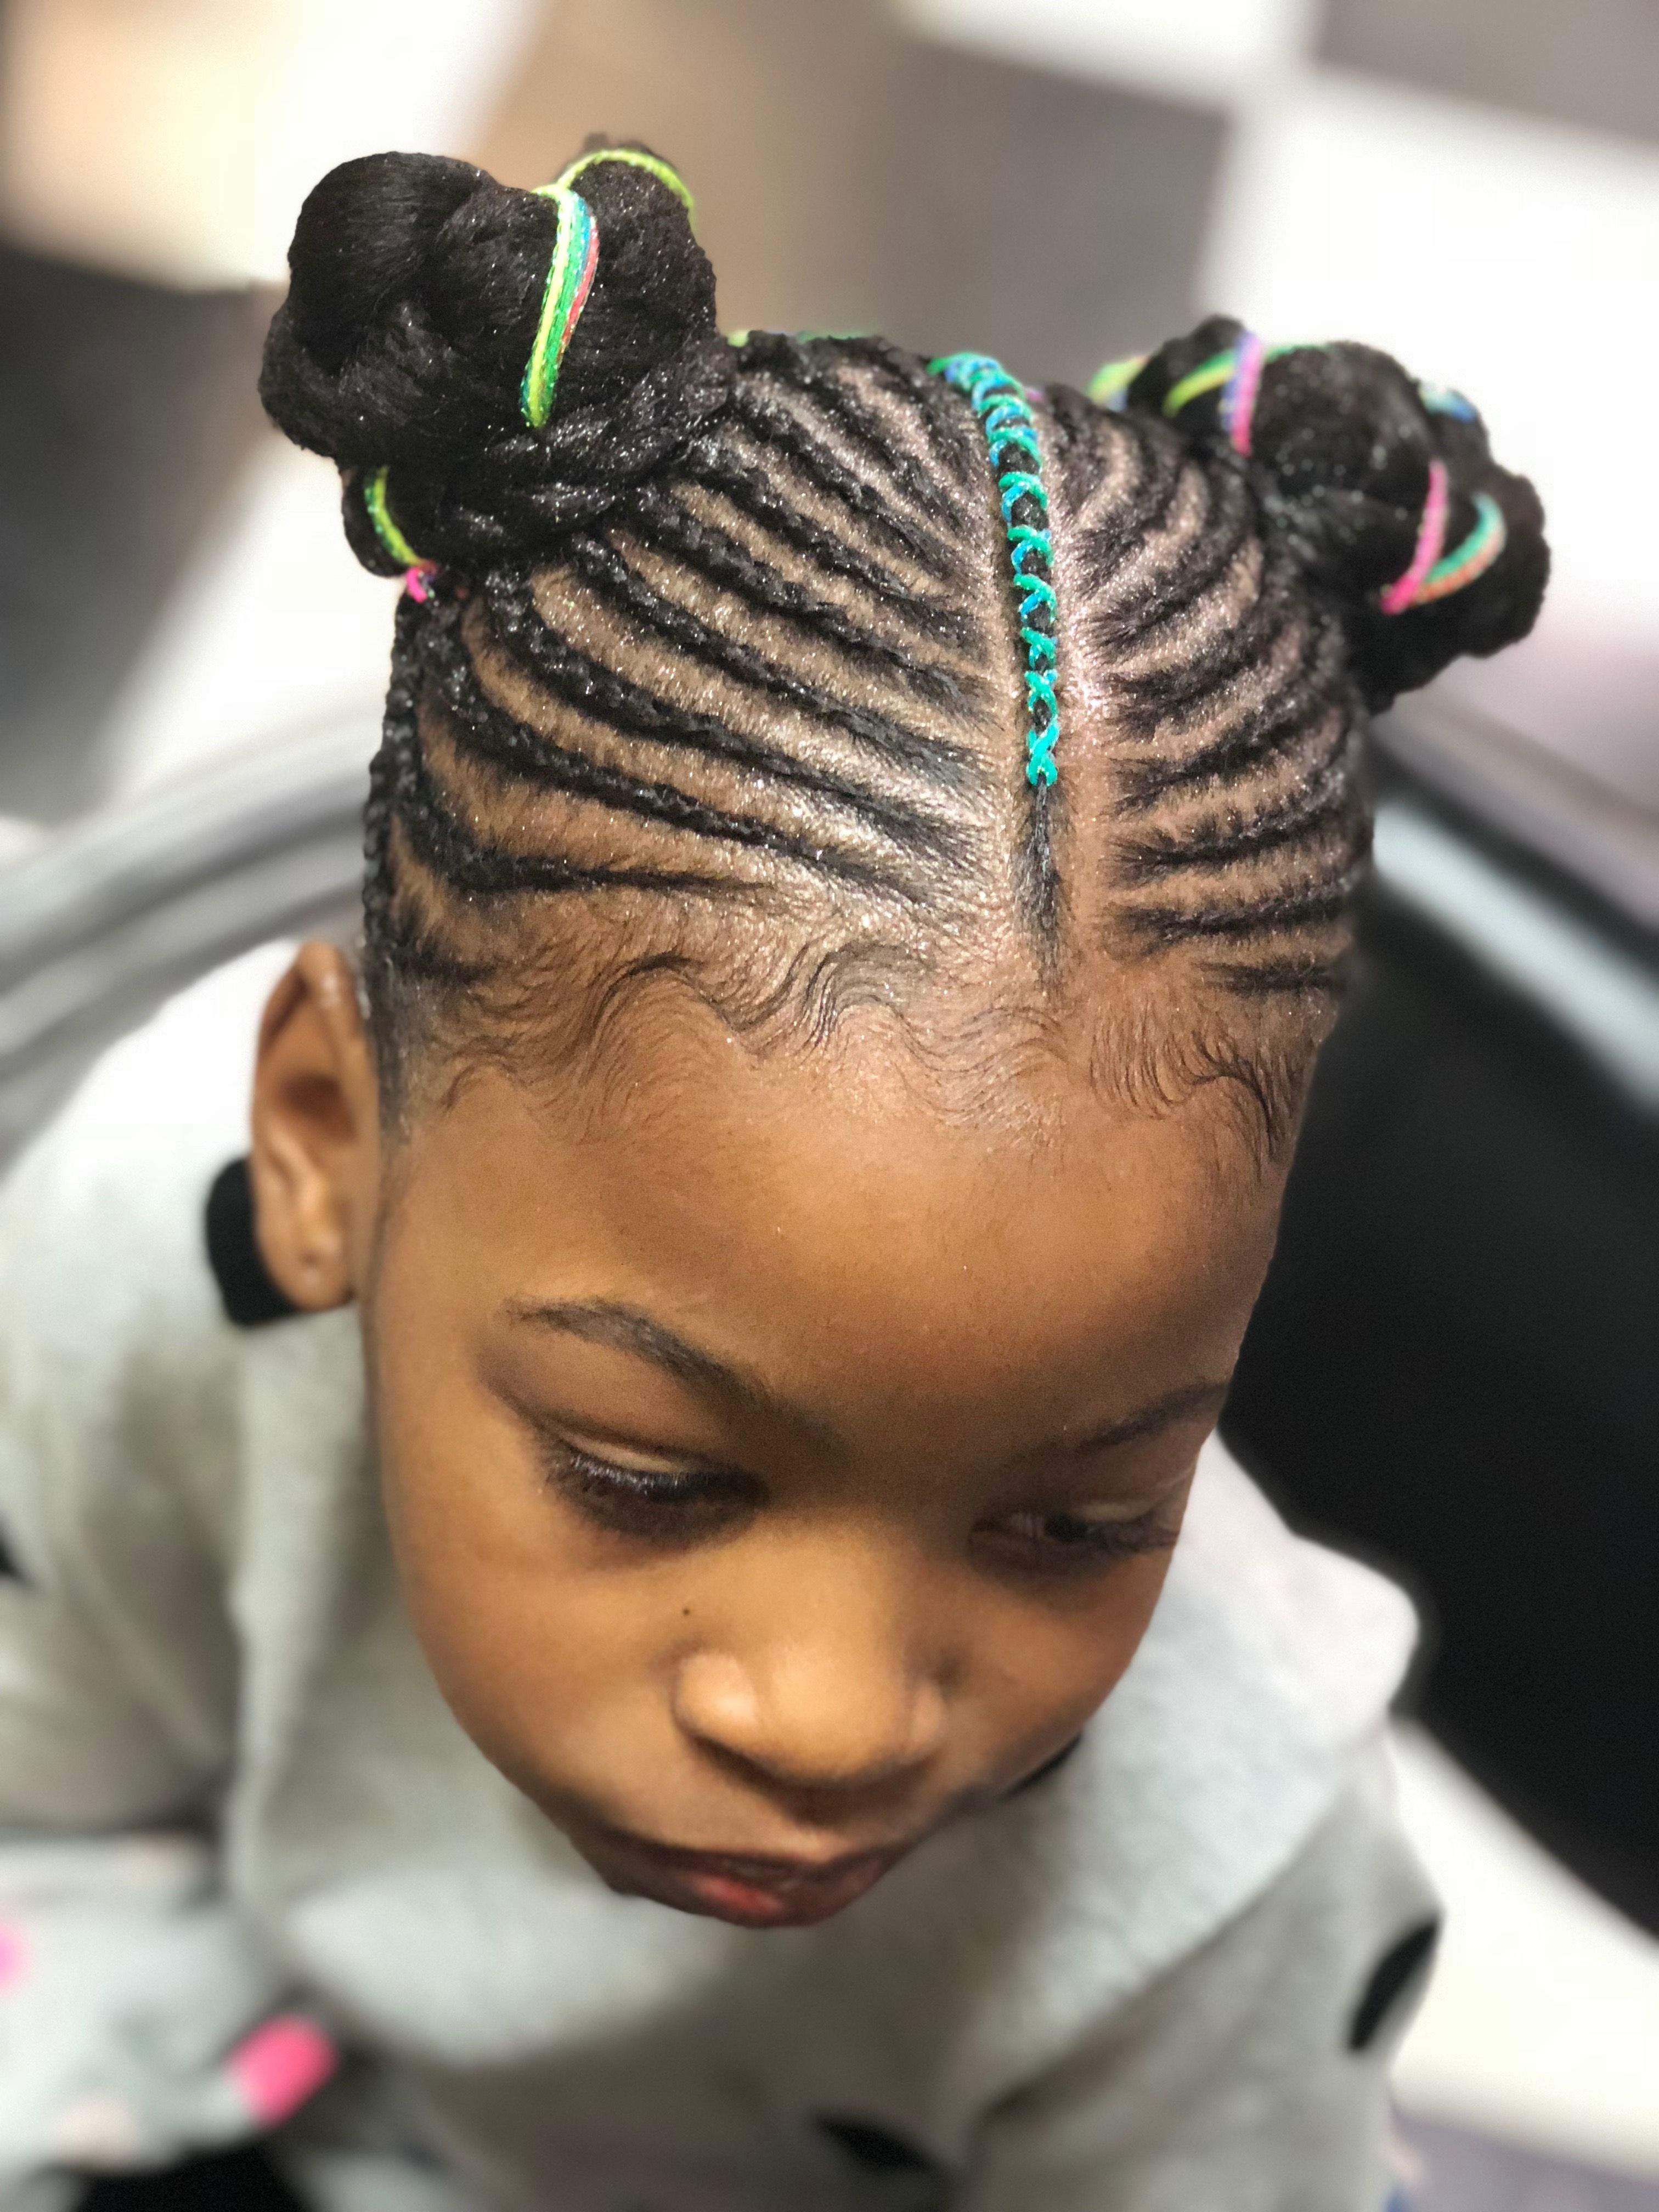 kid braid styles | hair in 2019 | hair styles, braids for